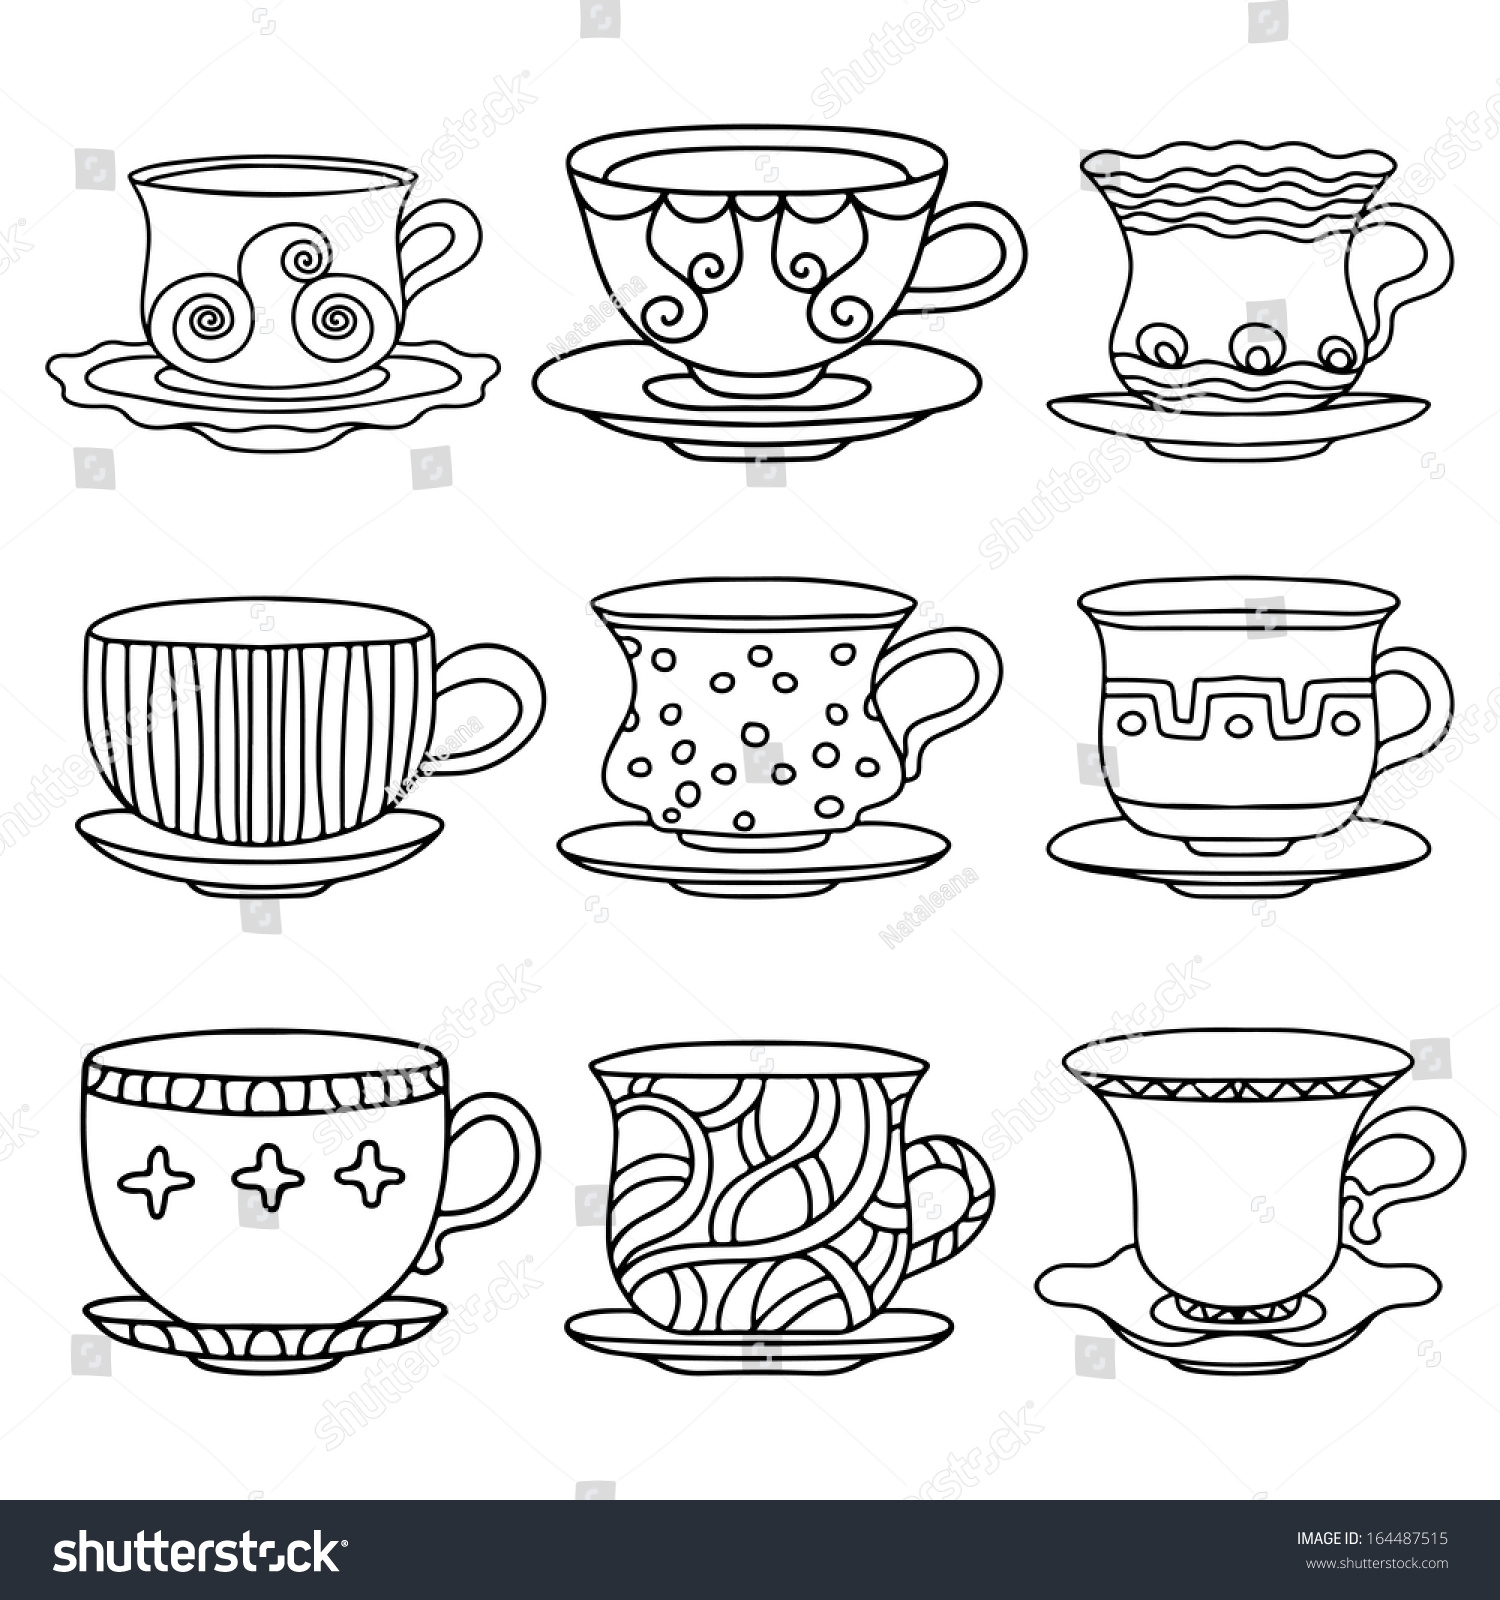 Design Koffiemok Tea Cup Coffee Cup Saucers Set Stock Vector 164487515